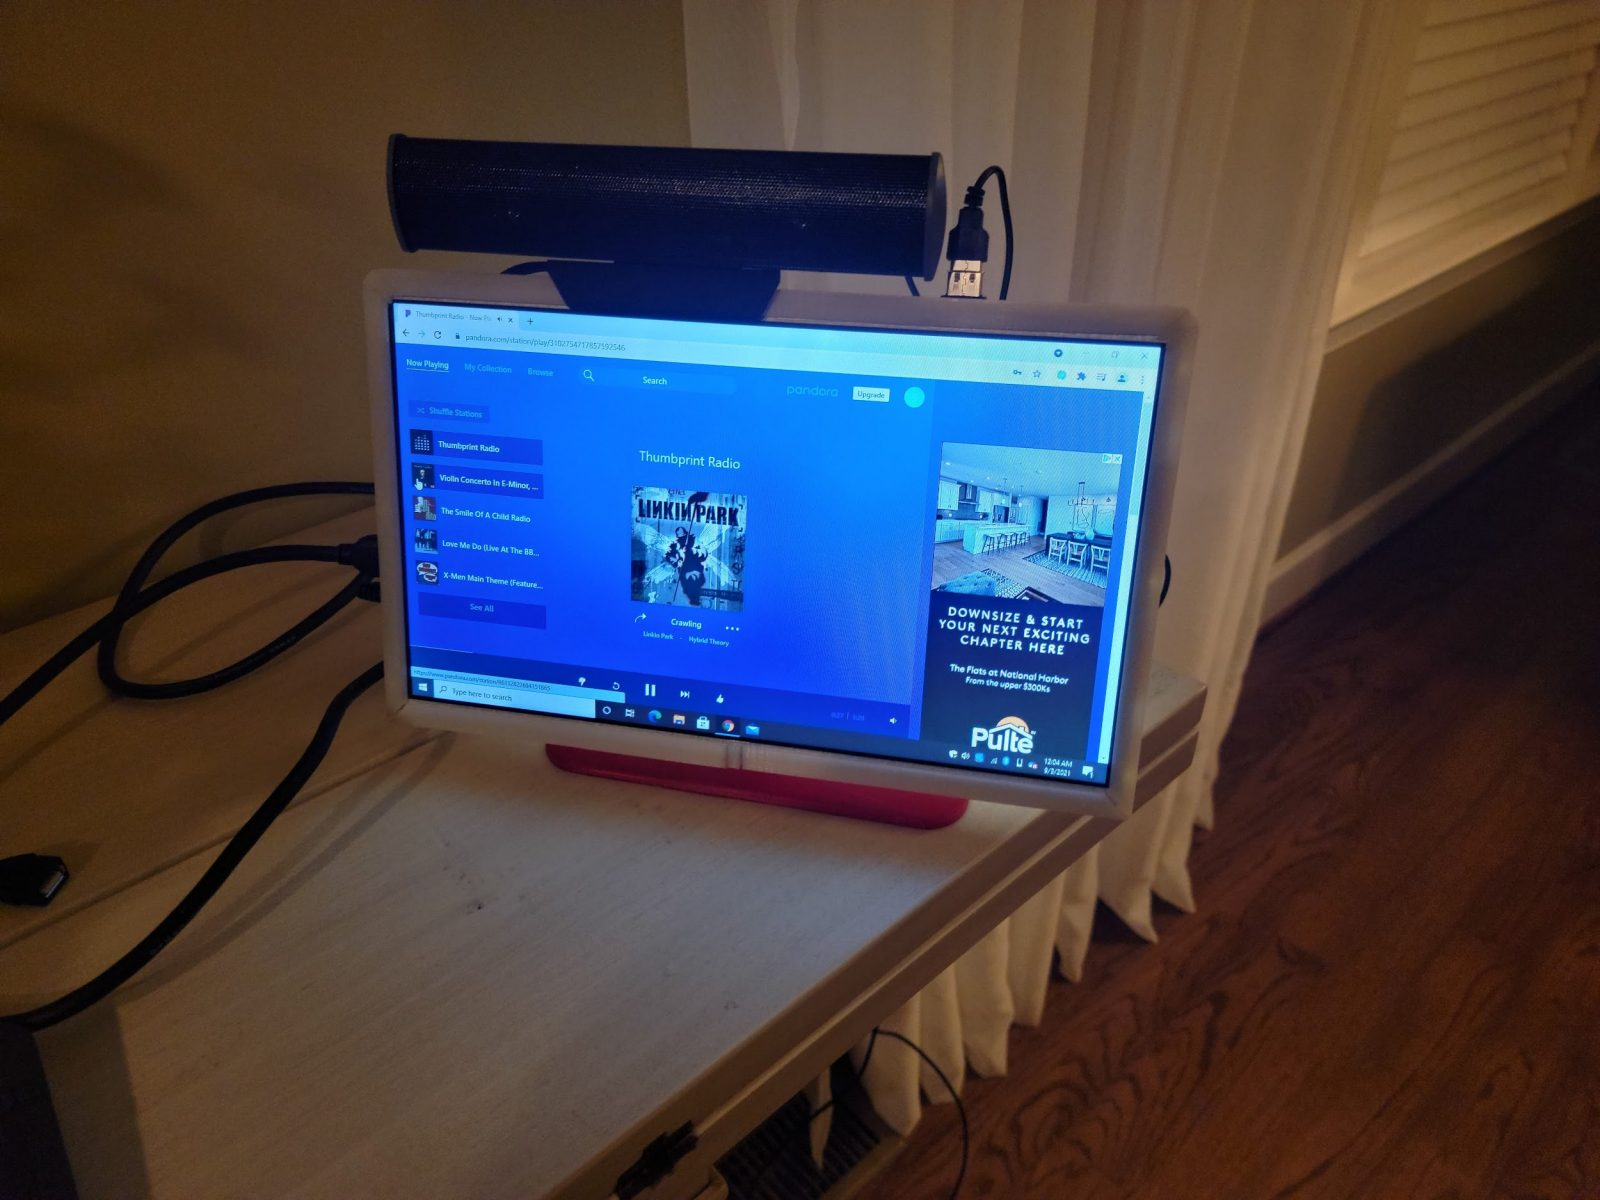 The DIY PC being tested.